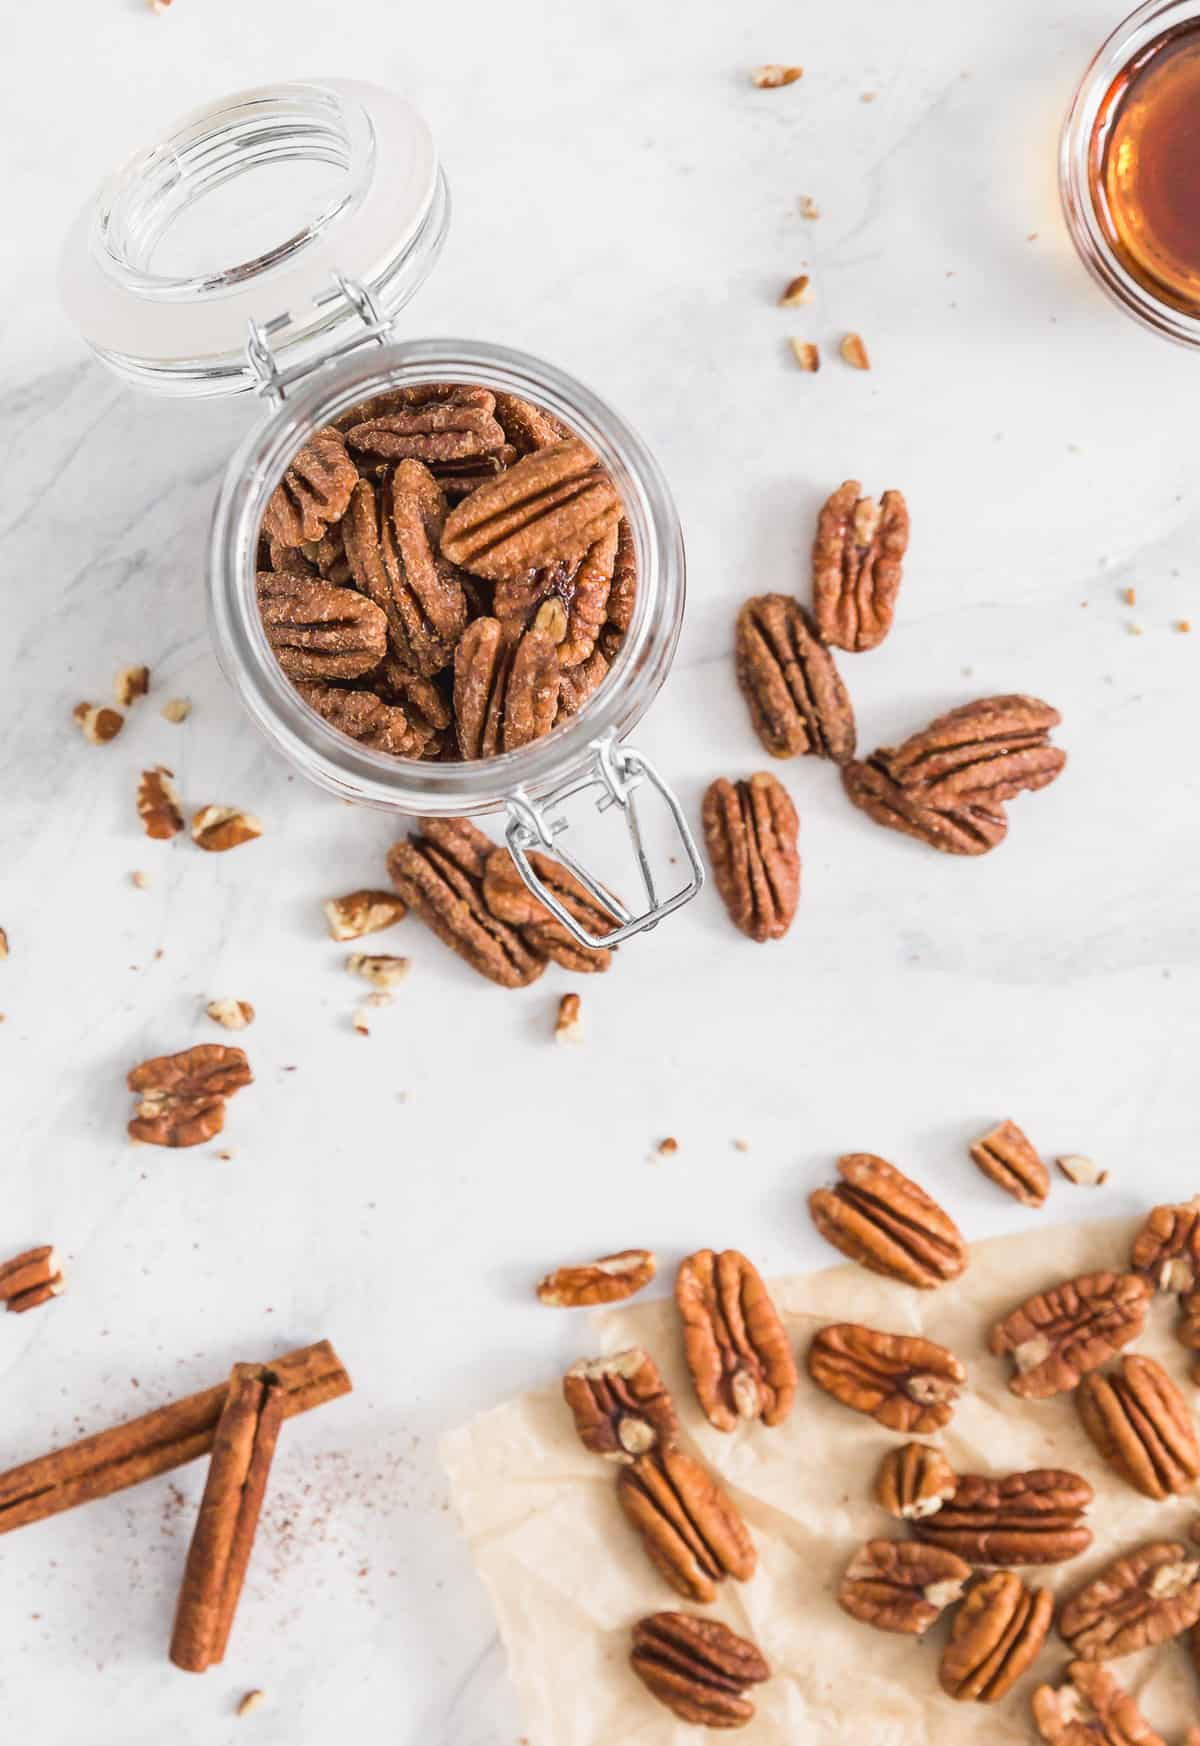 Cinnamon Maple Glazed Pecans, vegan snack, vegan appetizer, glazed pecans, pecans, nuts, plant based salad, plant based, vegan, vegetarian, whole food plant based, gluten free, recipe, wfpb, healthy, healthy vegan, oil free, no refined sugar, no oil, refined sugar free, dairy free, dairy, dinner, lunch, healthy recipe